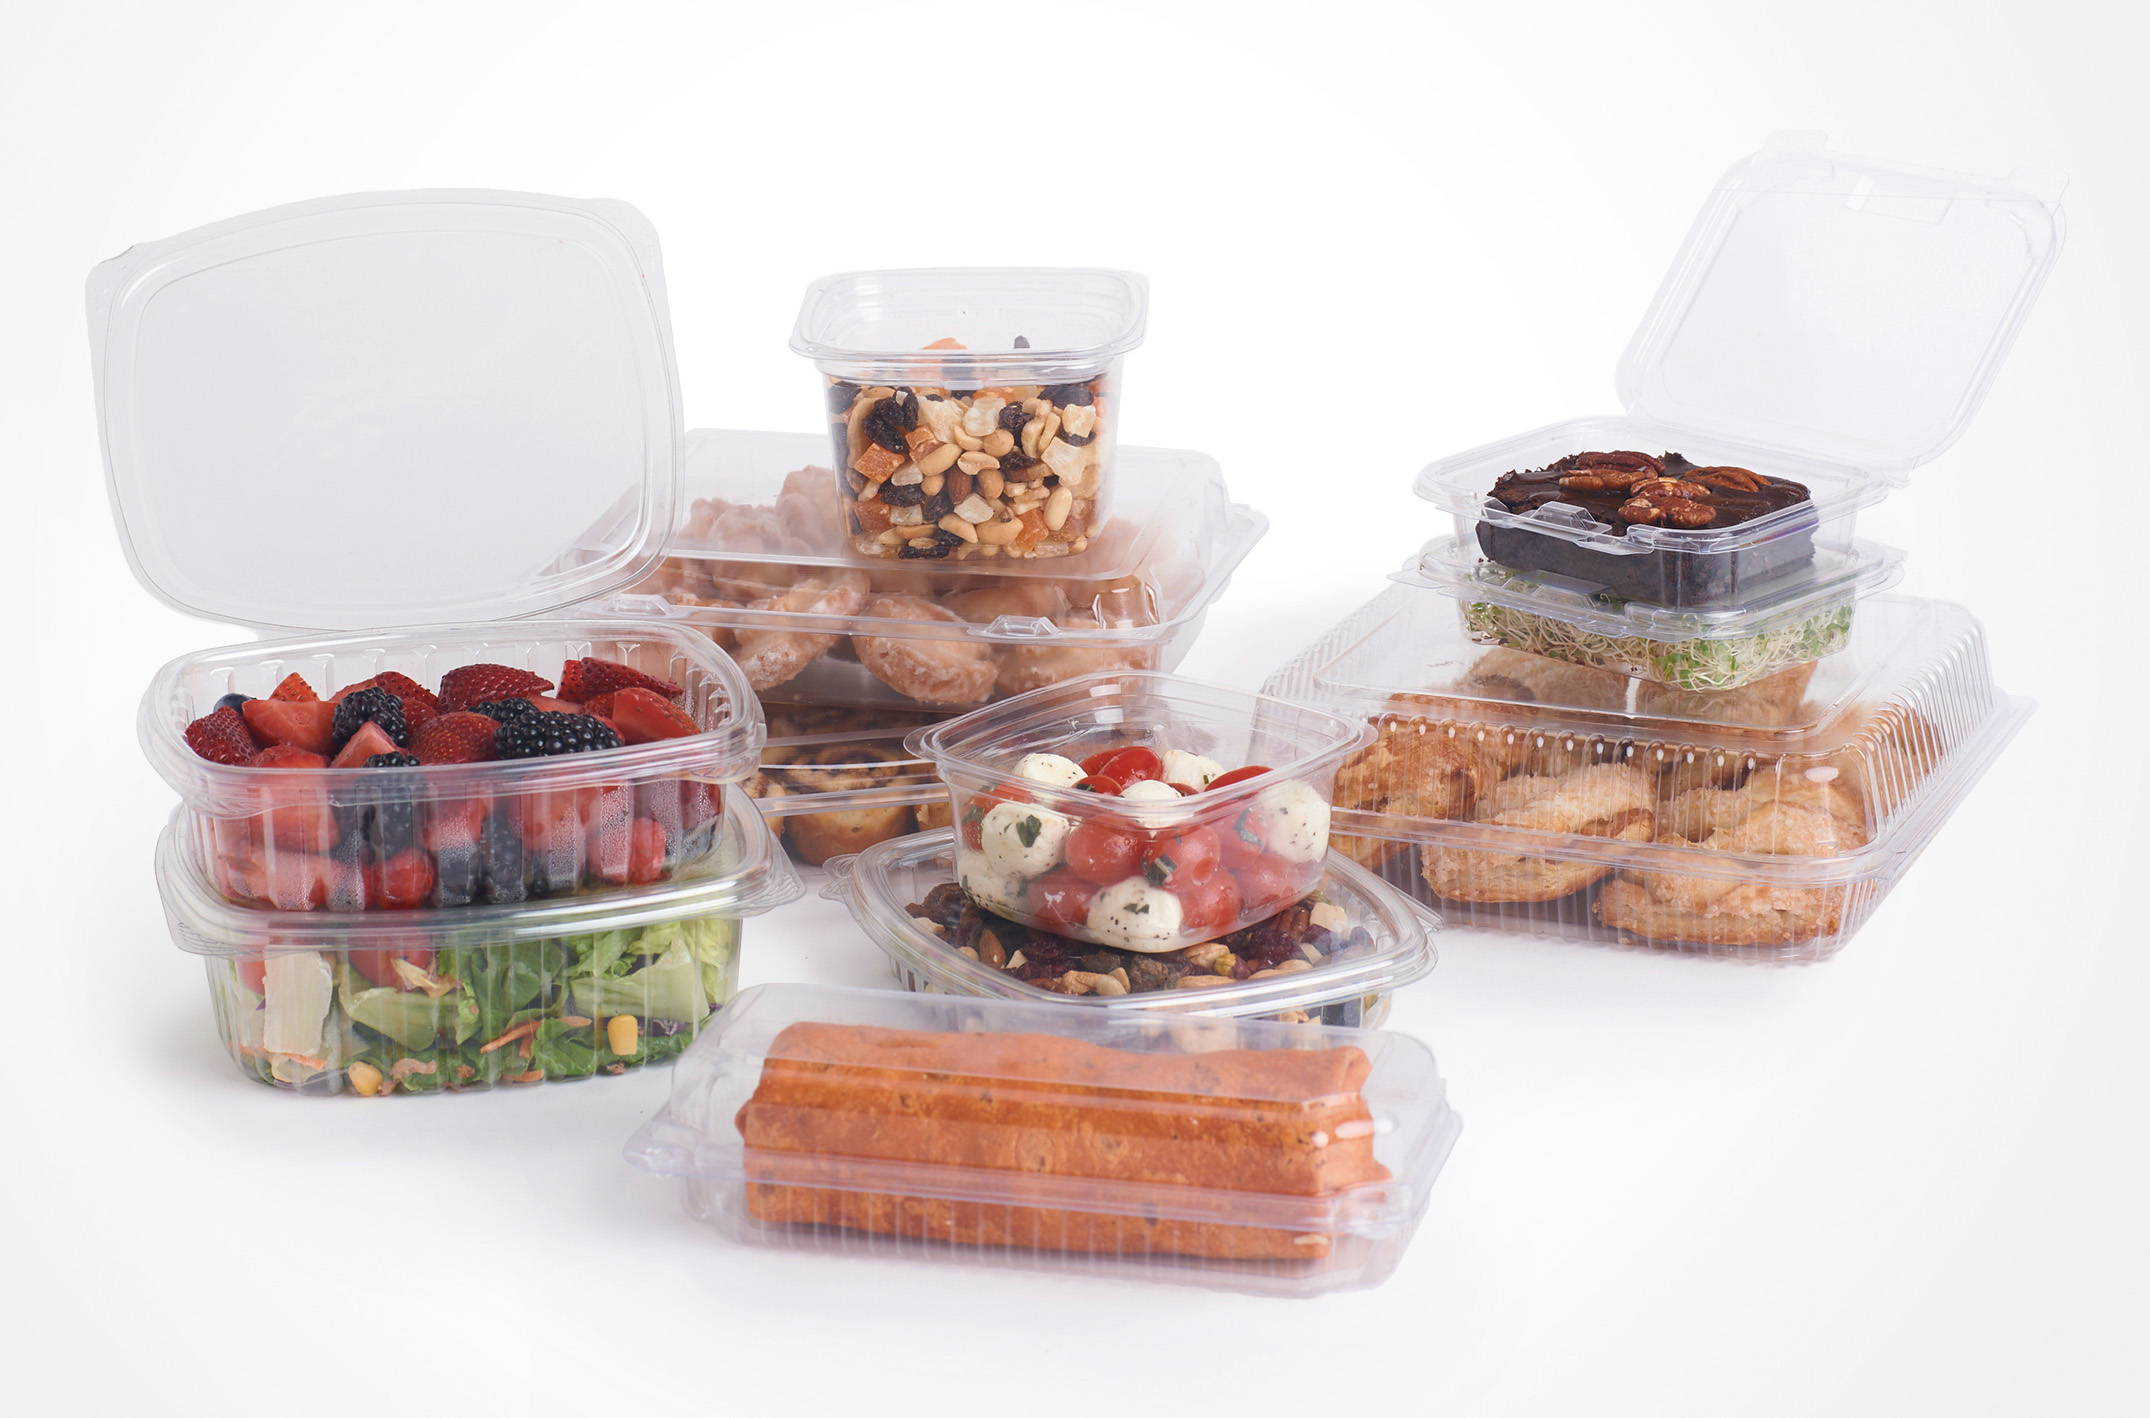 compostable deli containers filled with food